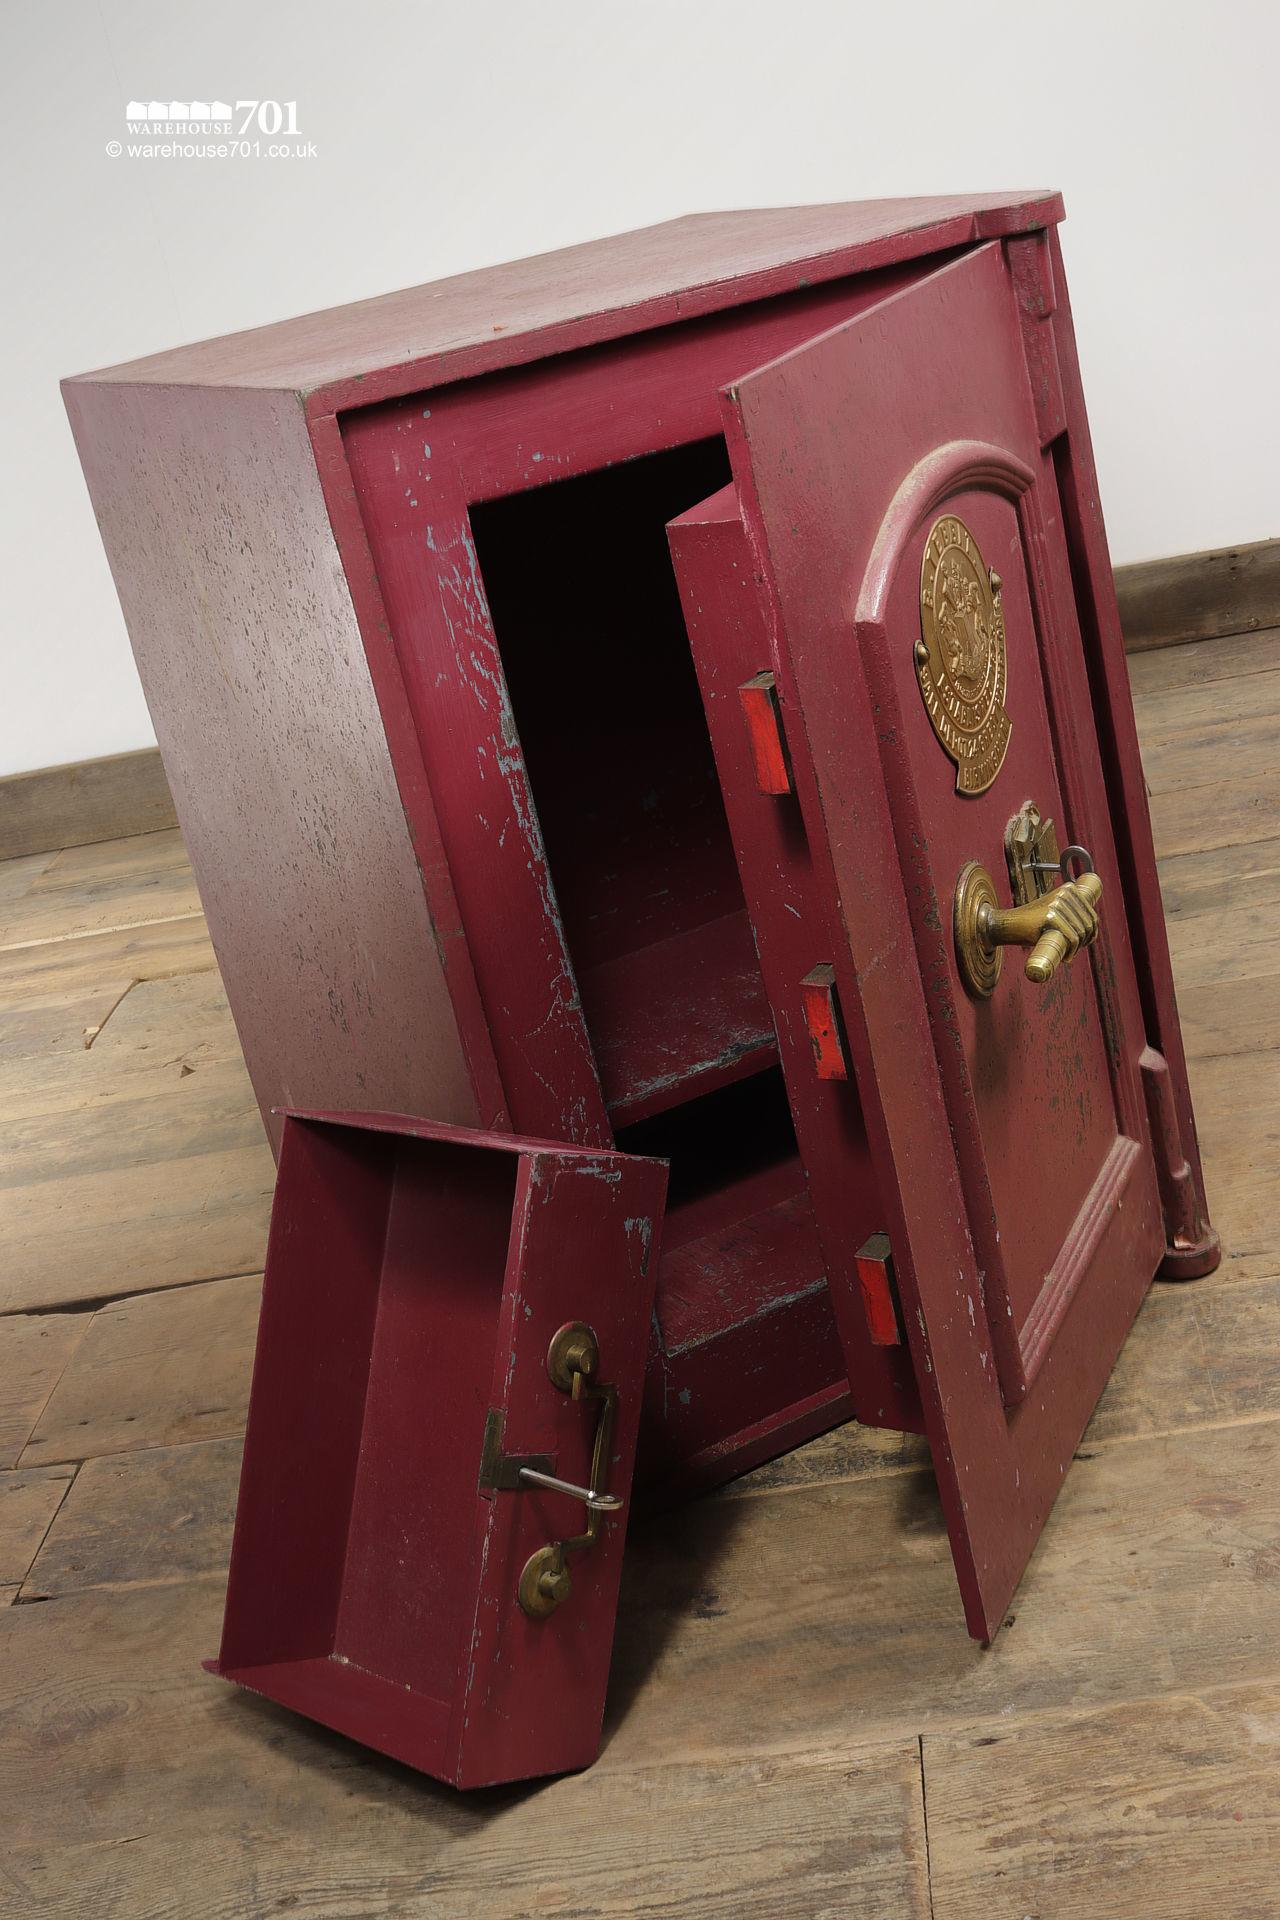 Salvaged Vintage Burgundy Red and Brass Safe by B.Tebbit of Birmingham #3